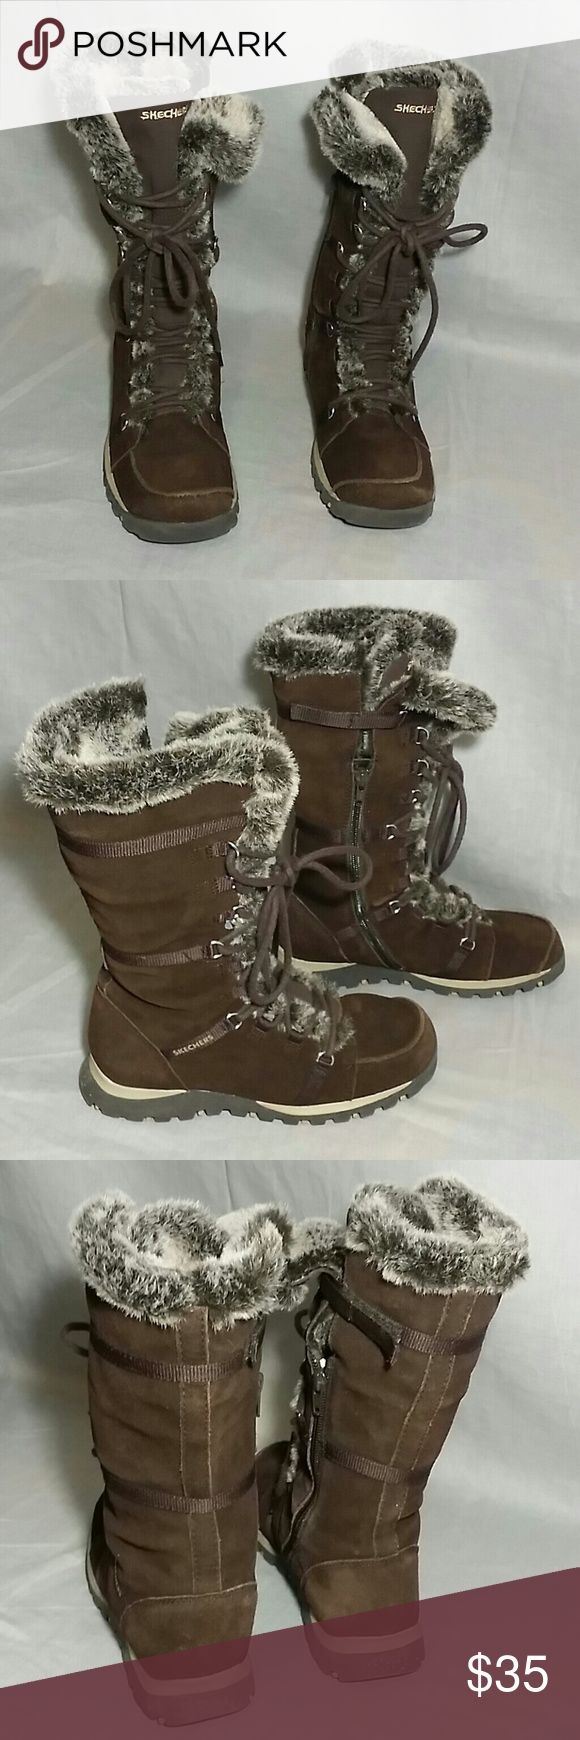 SKECHERS Winter Boots Shoes Brown 7.5 M Leather Item is in a good condition, NO PETS AND SMOKE FREE HOME. Skechers  Shoes Winter & Rain Boots